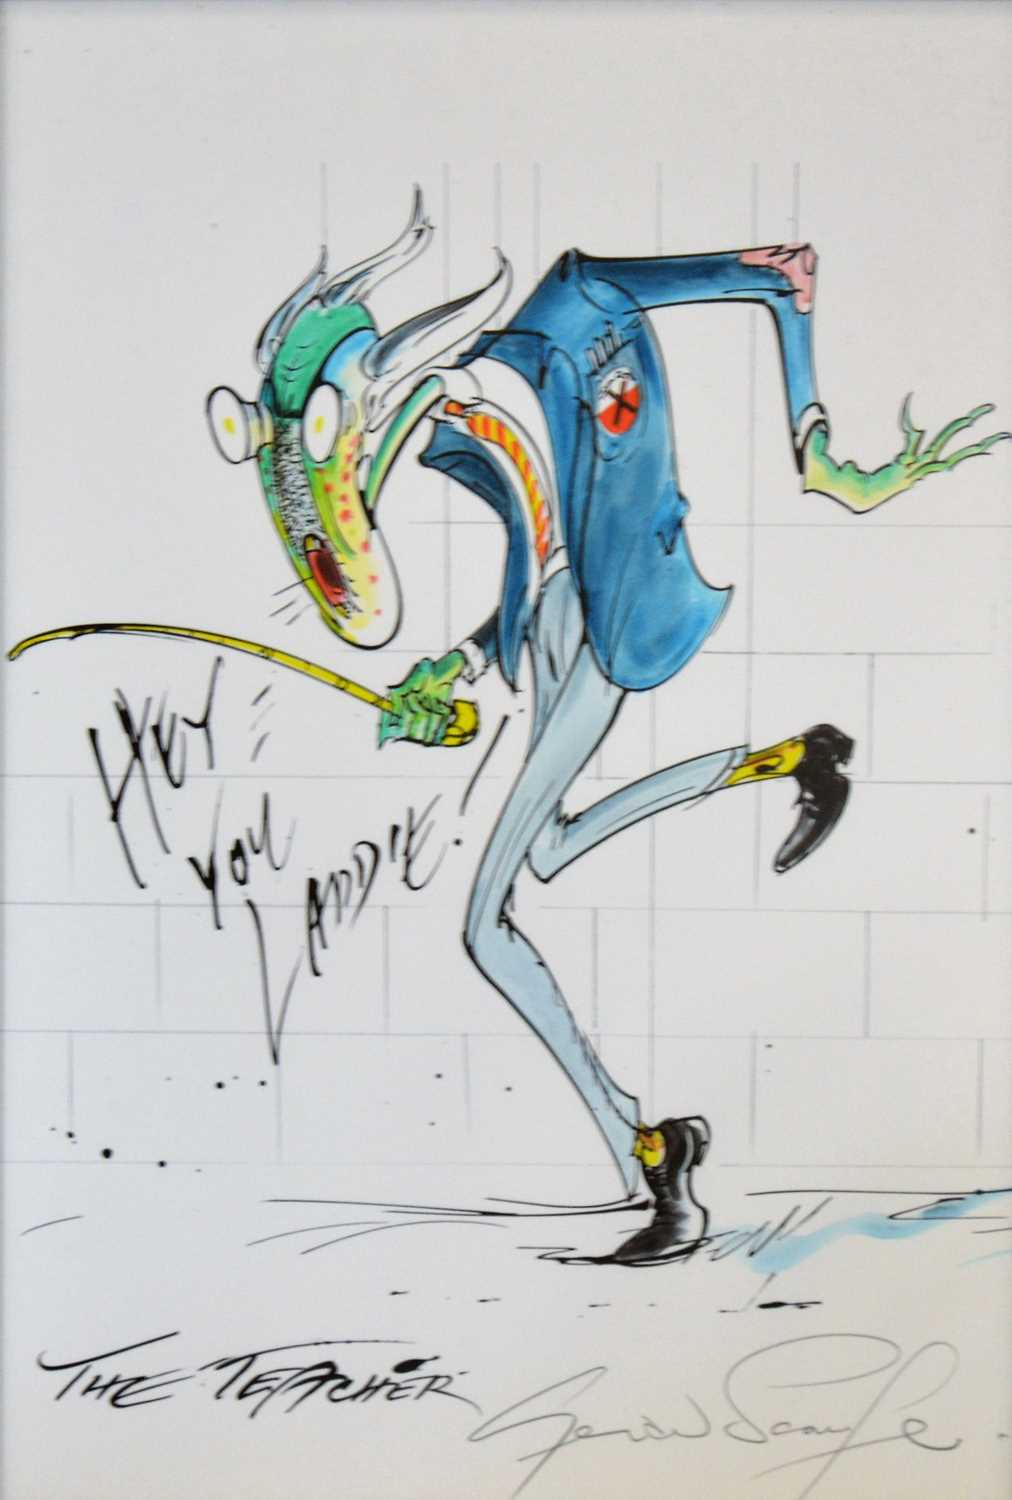 83 - Gerald Scarfe; The Teacher, pencil signed print, art work for Pink Floyd's The Wall, framed and glazed, 37x31.5cm.